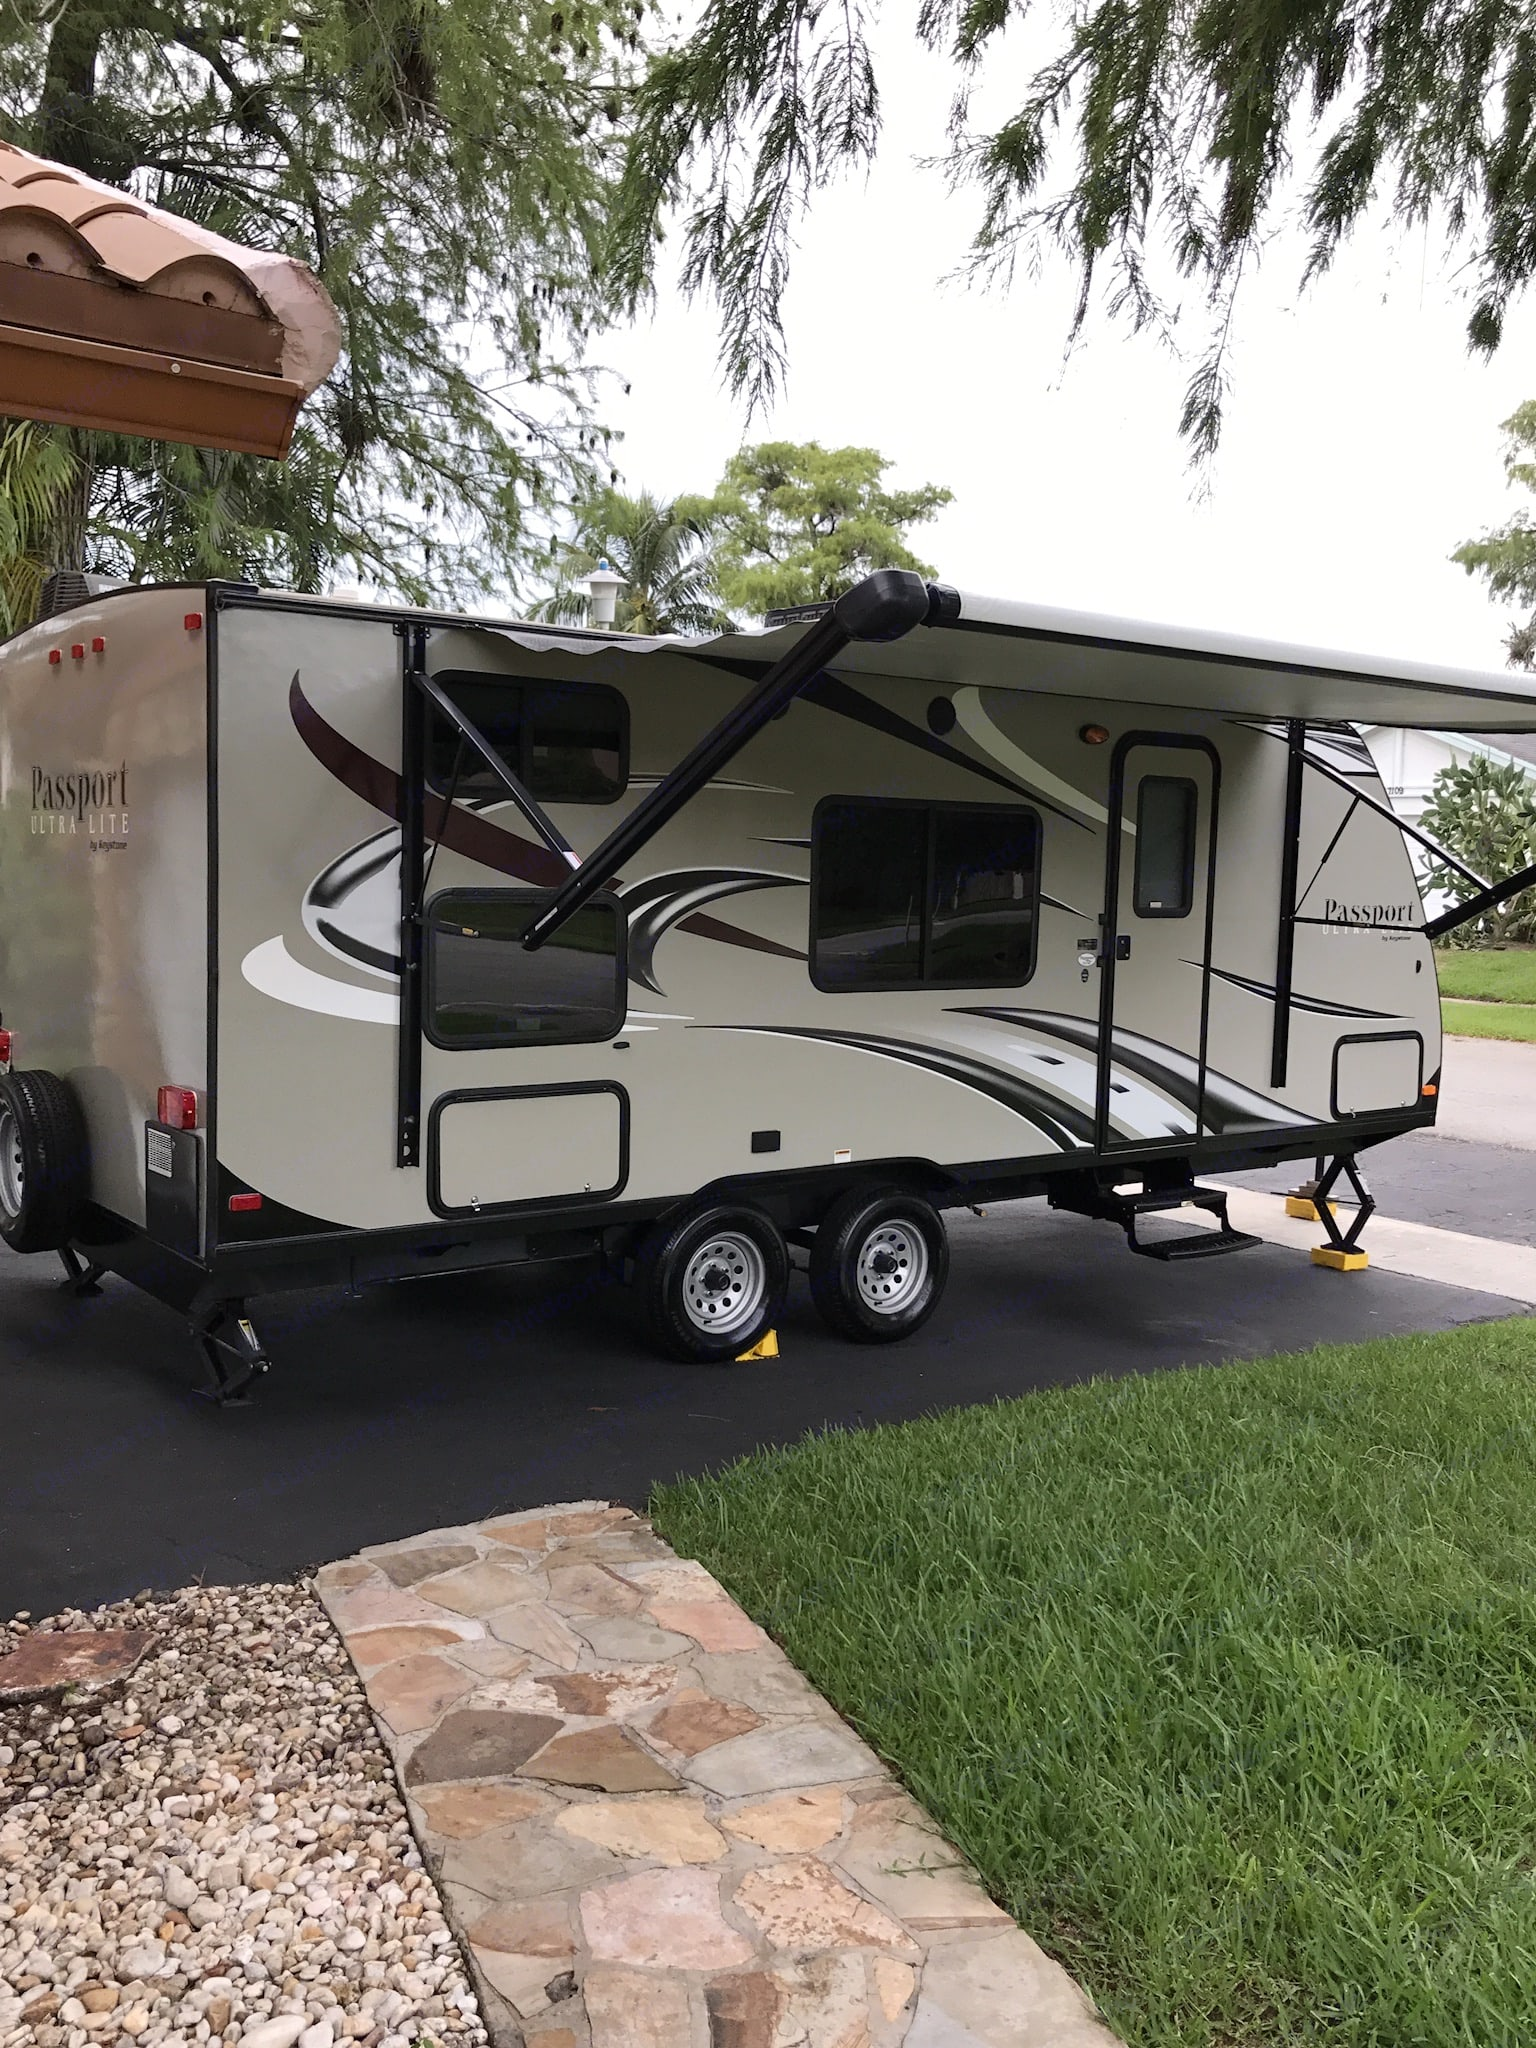 Exterior automatic awning. Keystone Passport 2015